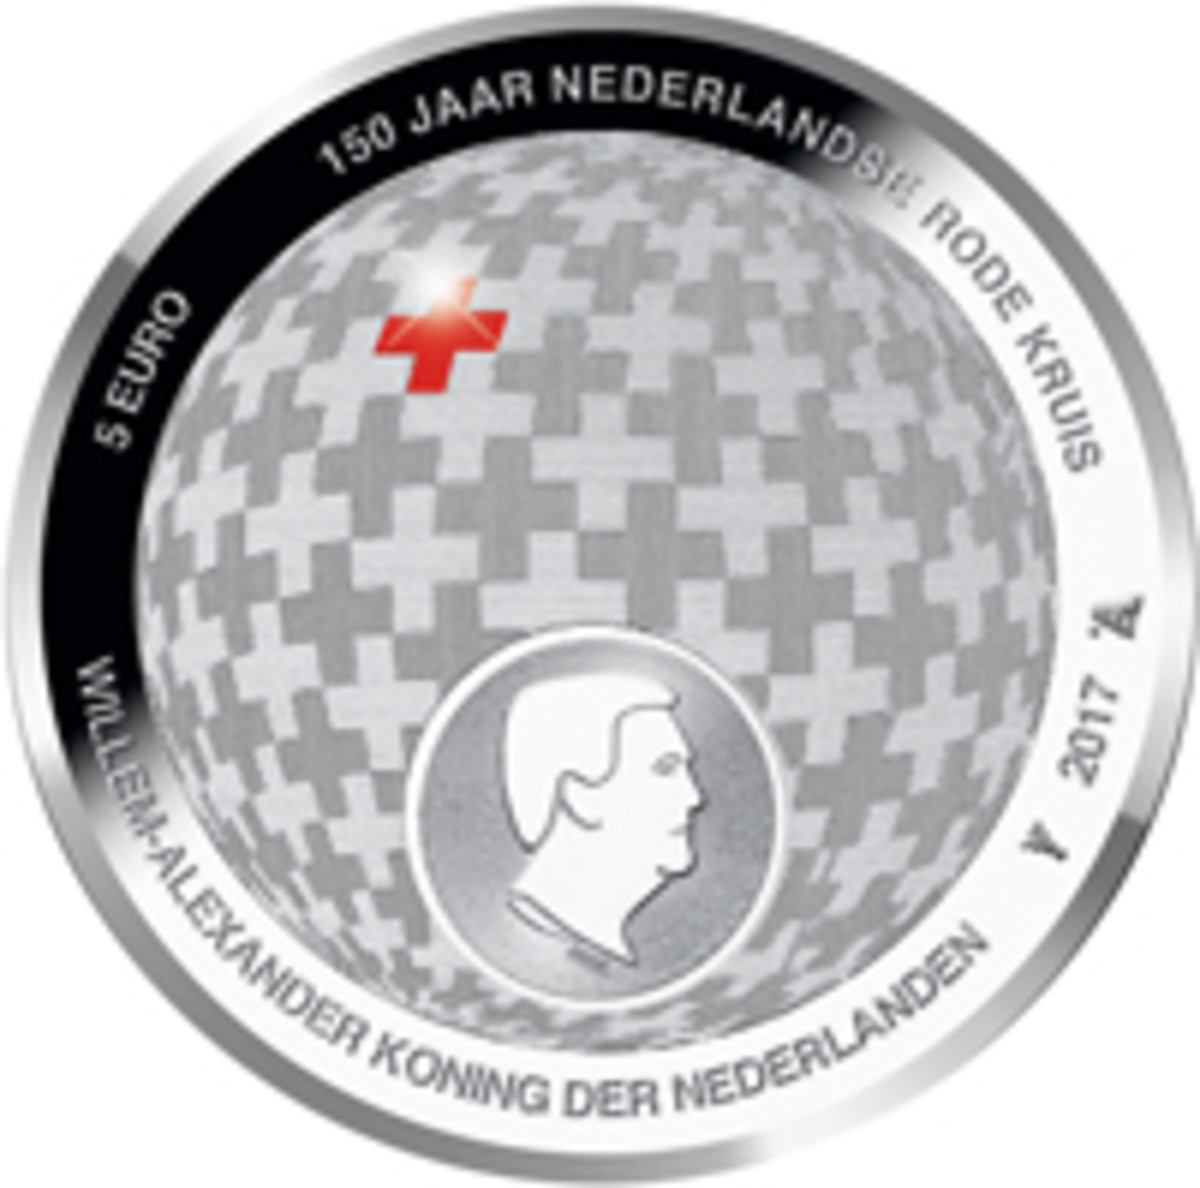 A red cross stands out on the common obverse/reverse design of the silver proof 5-euro coin that marks the 150th anniversary of the Dutch Red Cross. (Image courtesy Koninklijke Nederlandse Munt)